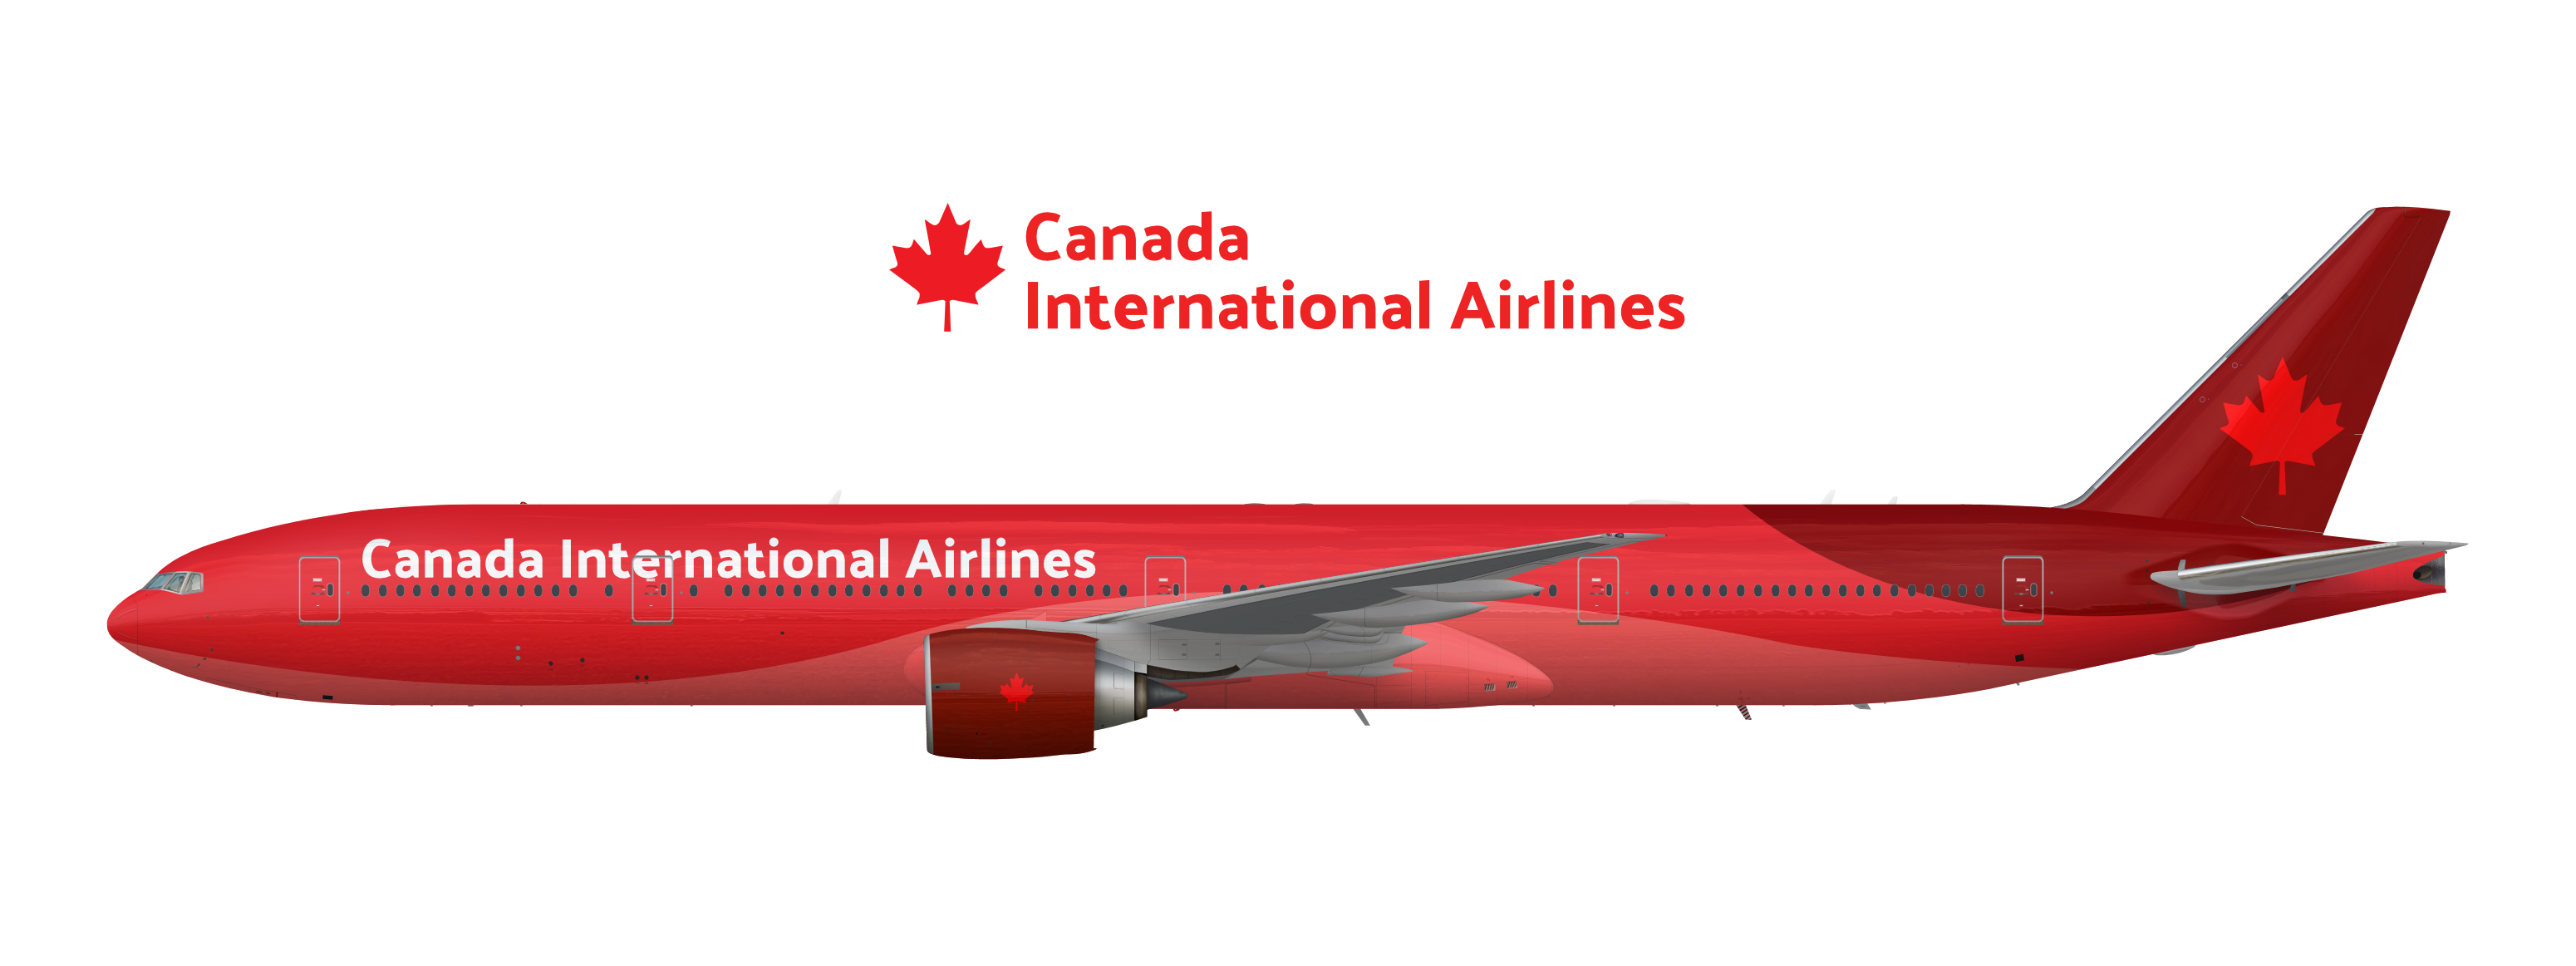 Canada International Airlines